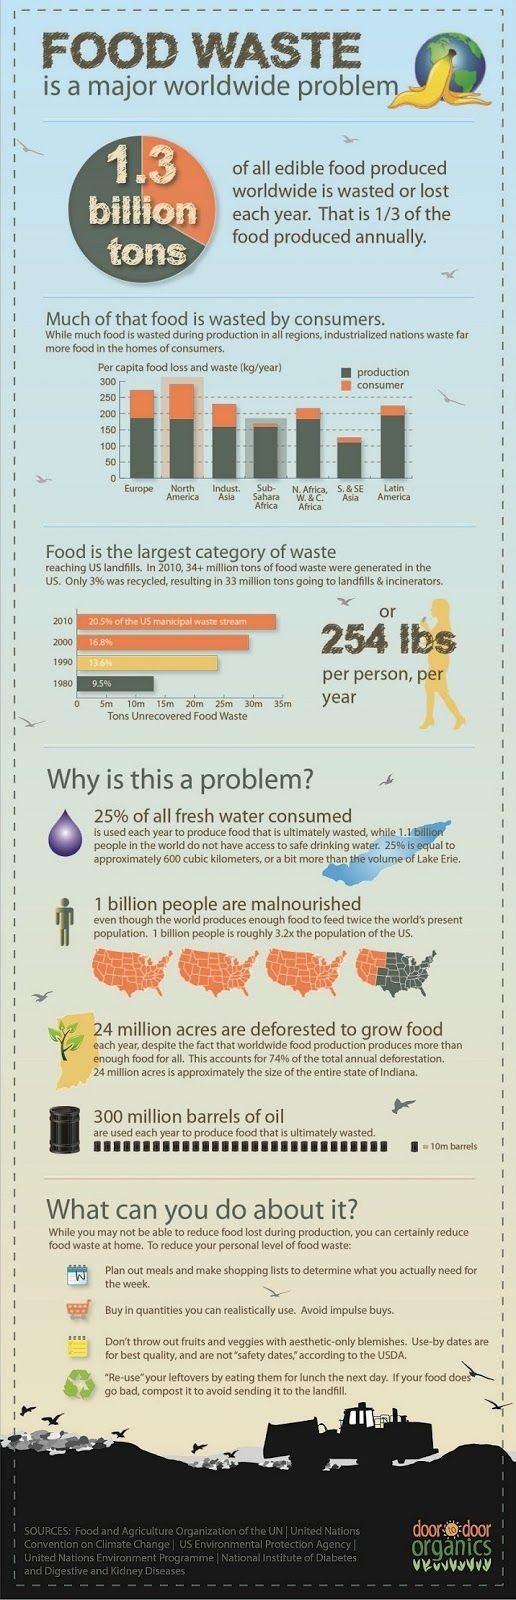 About Food Waste, a worldwide issue